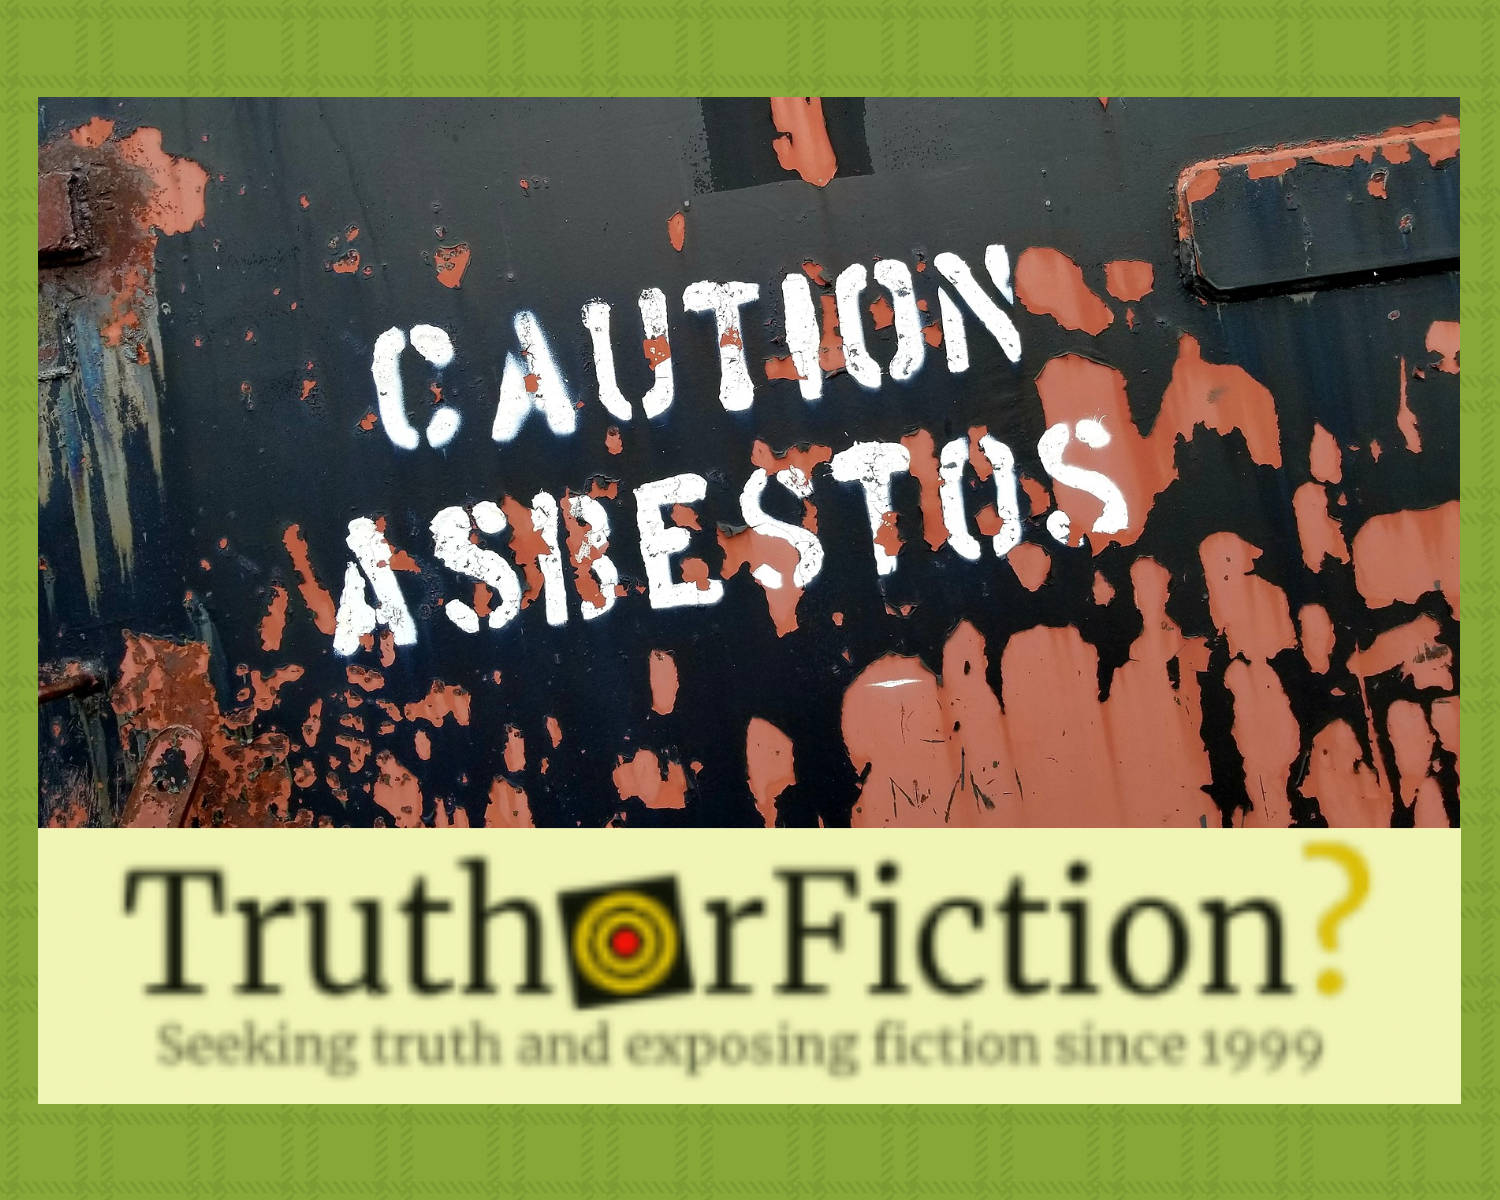 Did a Russian Mining Company Stamp Donald Trump's Face on New Asbestos Products?